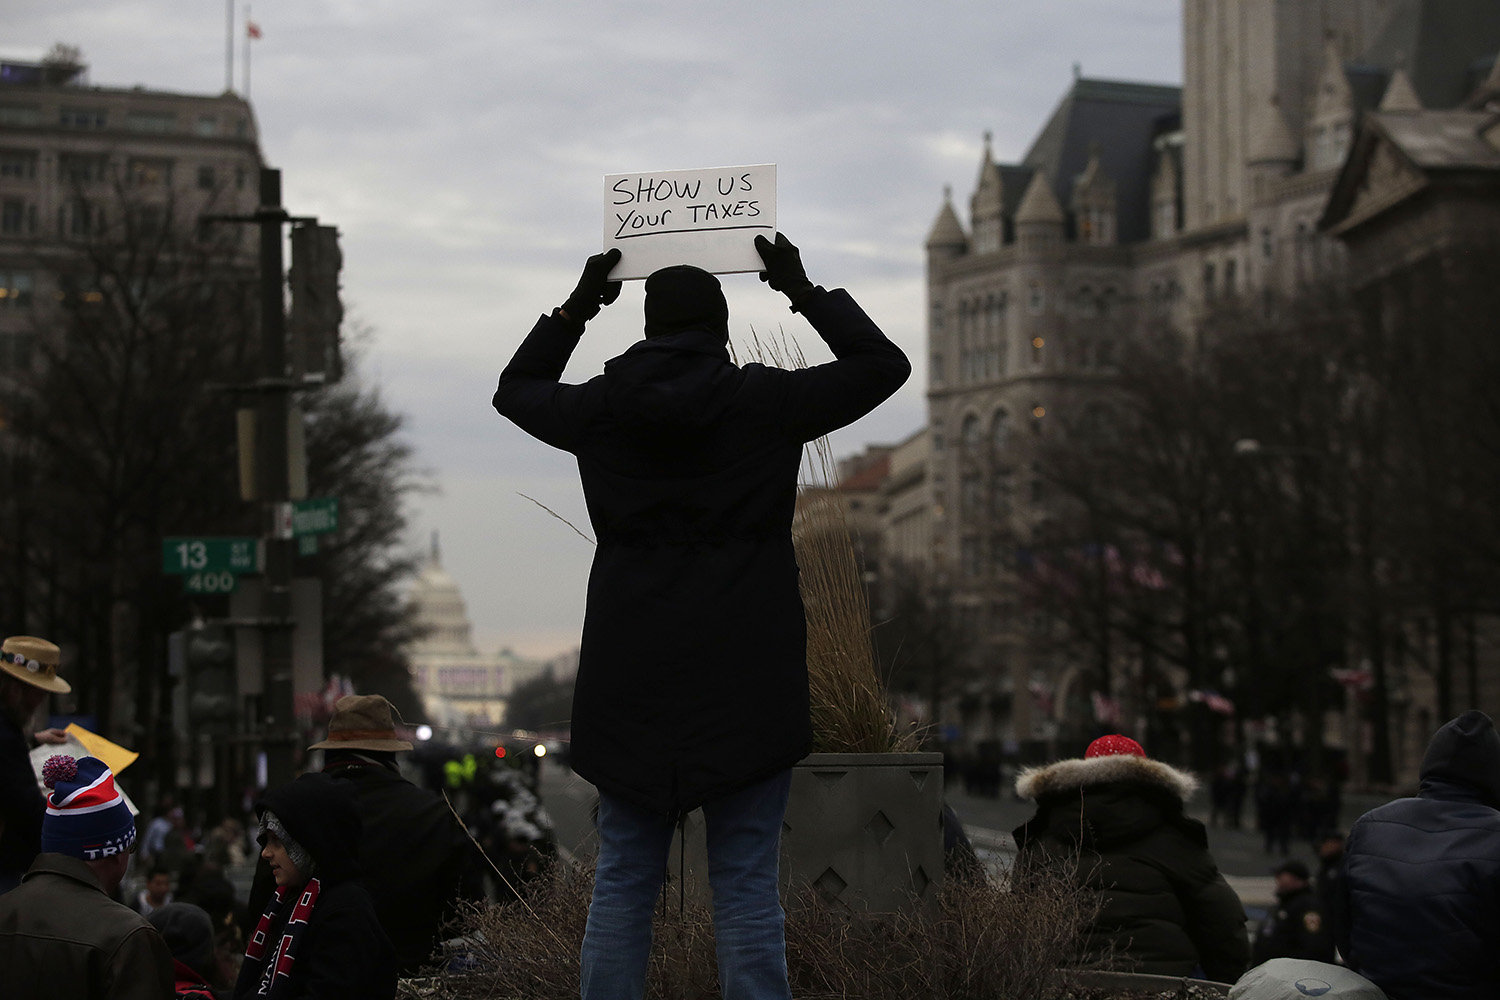 A person holds up a sign before the Presidential Inauguration of Donald Trump at Freedom Plaza on January 20, 2017 in Washington, DC. Donald Trump will be sworn in as the 45th president of the United States Friday -- capping his improbable journey to the White House and beginning a four-year term that promises to shake up Washington and the world. / AFP / Joshua LOTT (Photo credit should read JOSHUA LOTT/AFP/Getty Images)